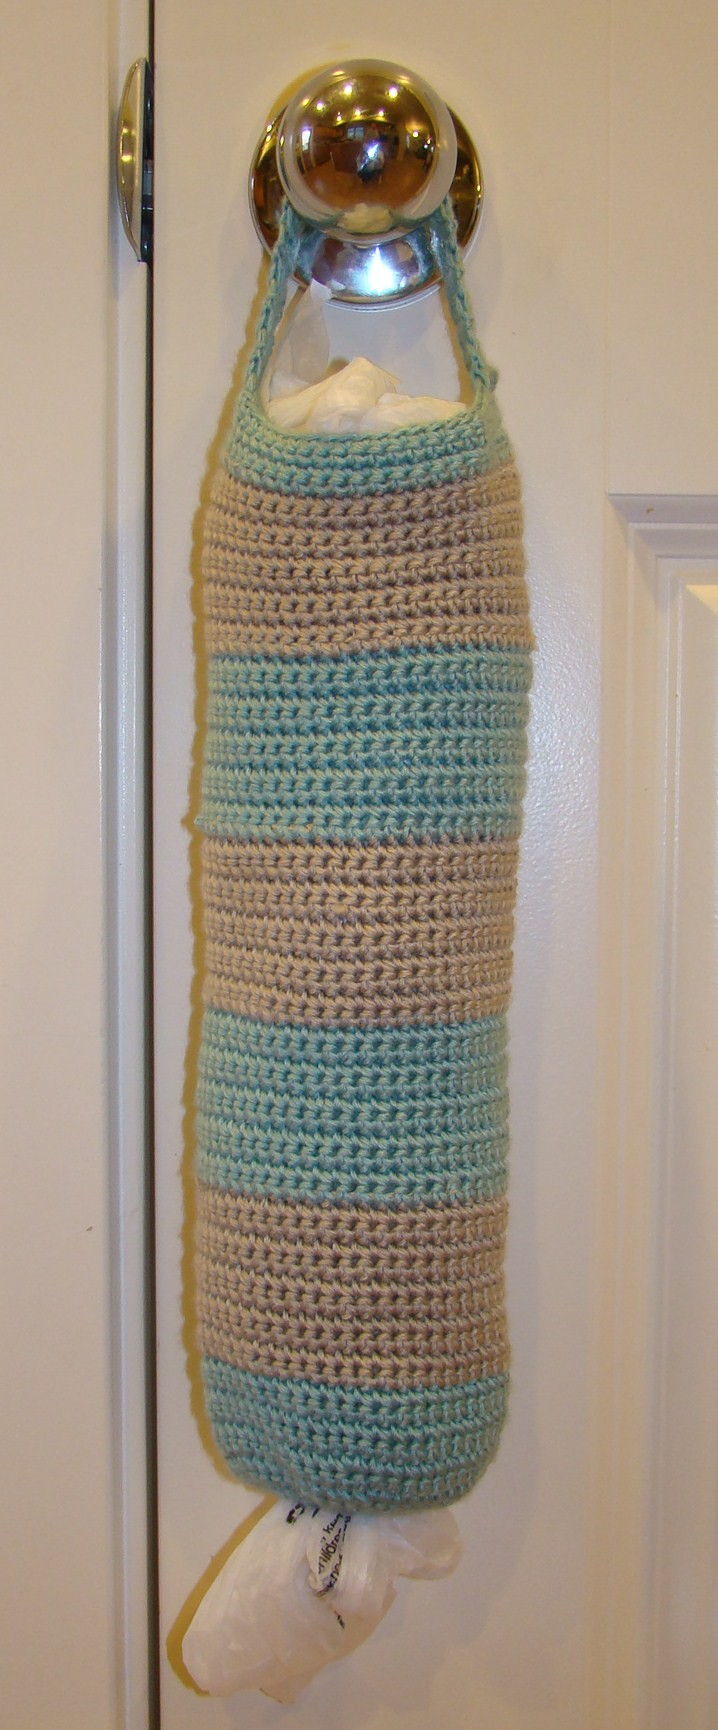 Plastic Bags Mess? Make Your Own Crochet Bag Holder - Knit And ...